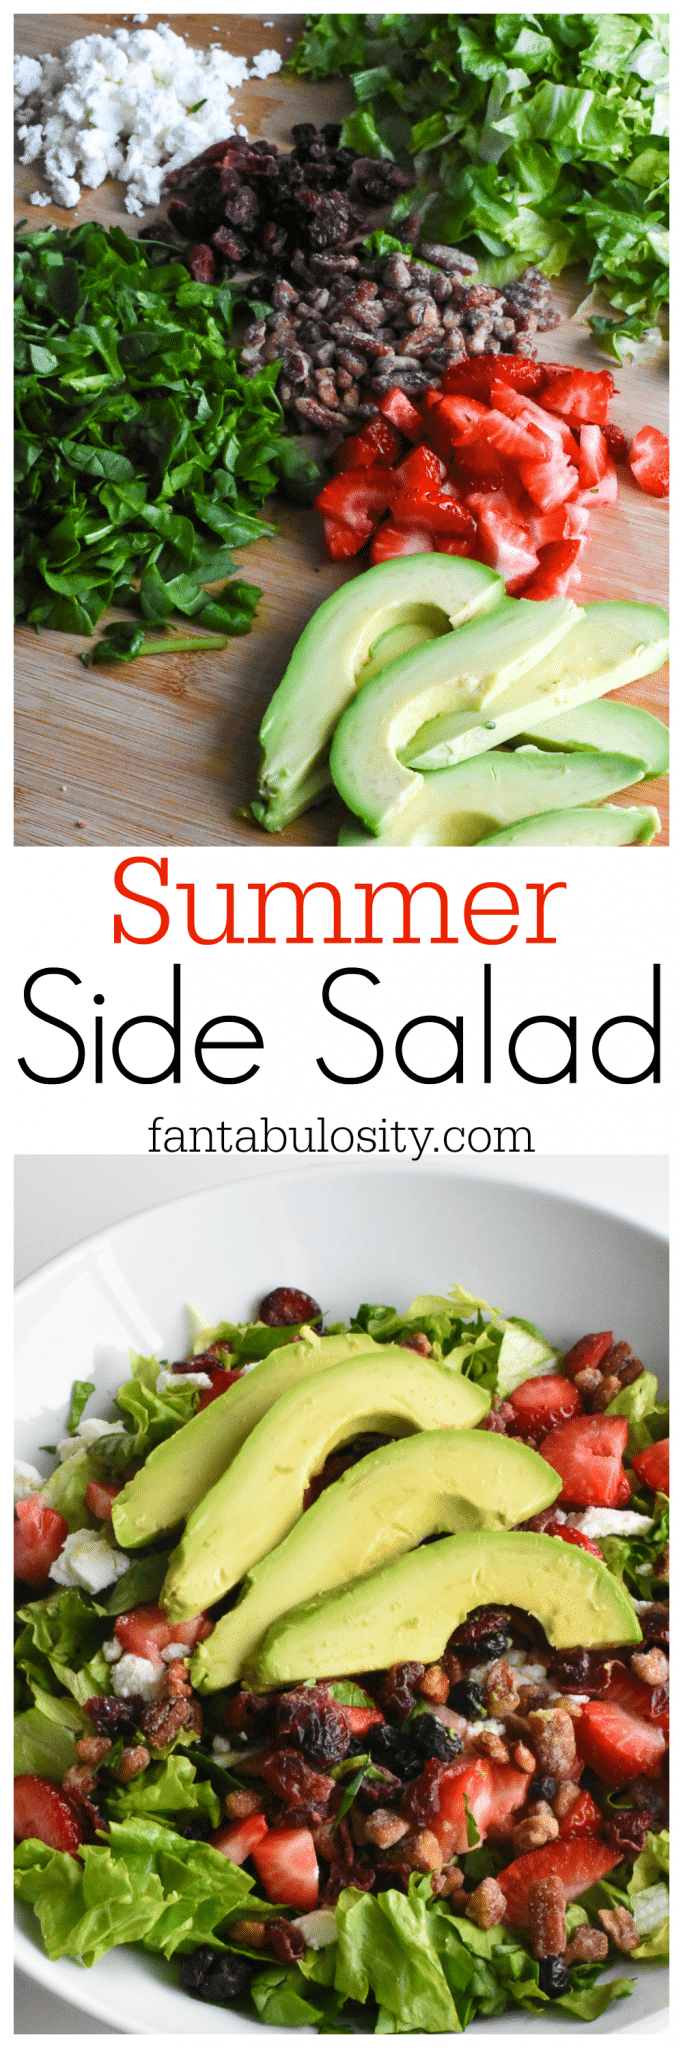 Summer Side Salad Recipe. I'll be taking this to EVERY outing, this year. fantabulosity.com